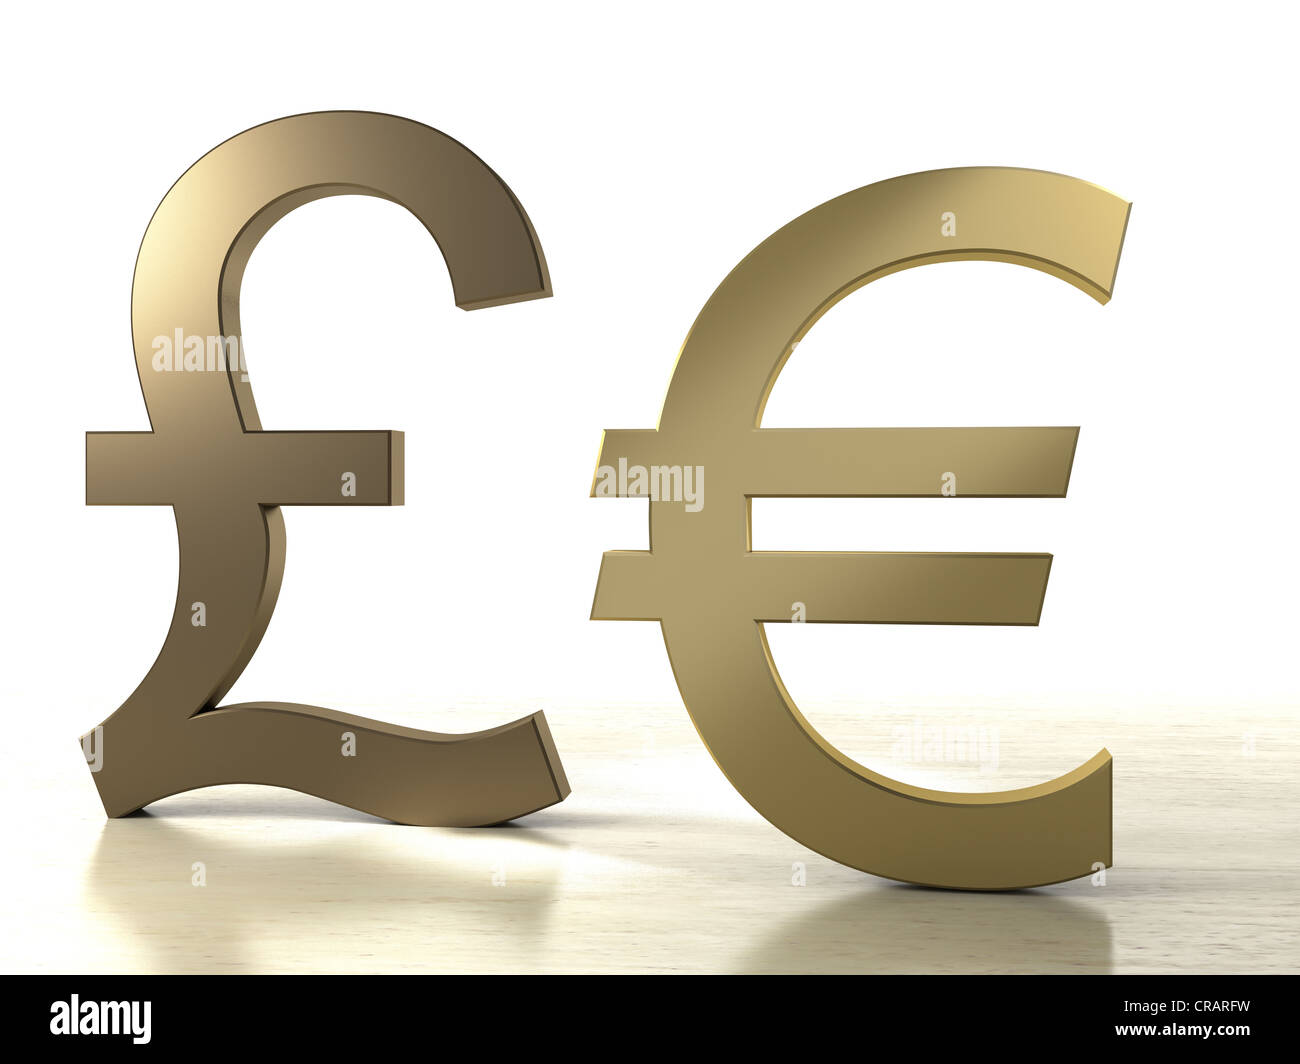 the currency euro Current exchange rates of major world currencies find updated foreign currency values, a currency converter and info for foreign currency trading.